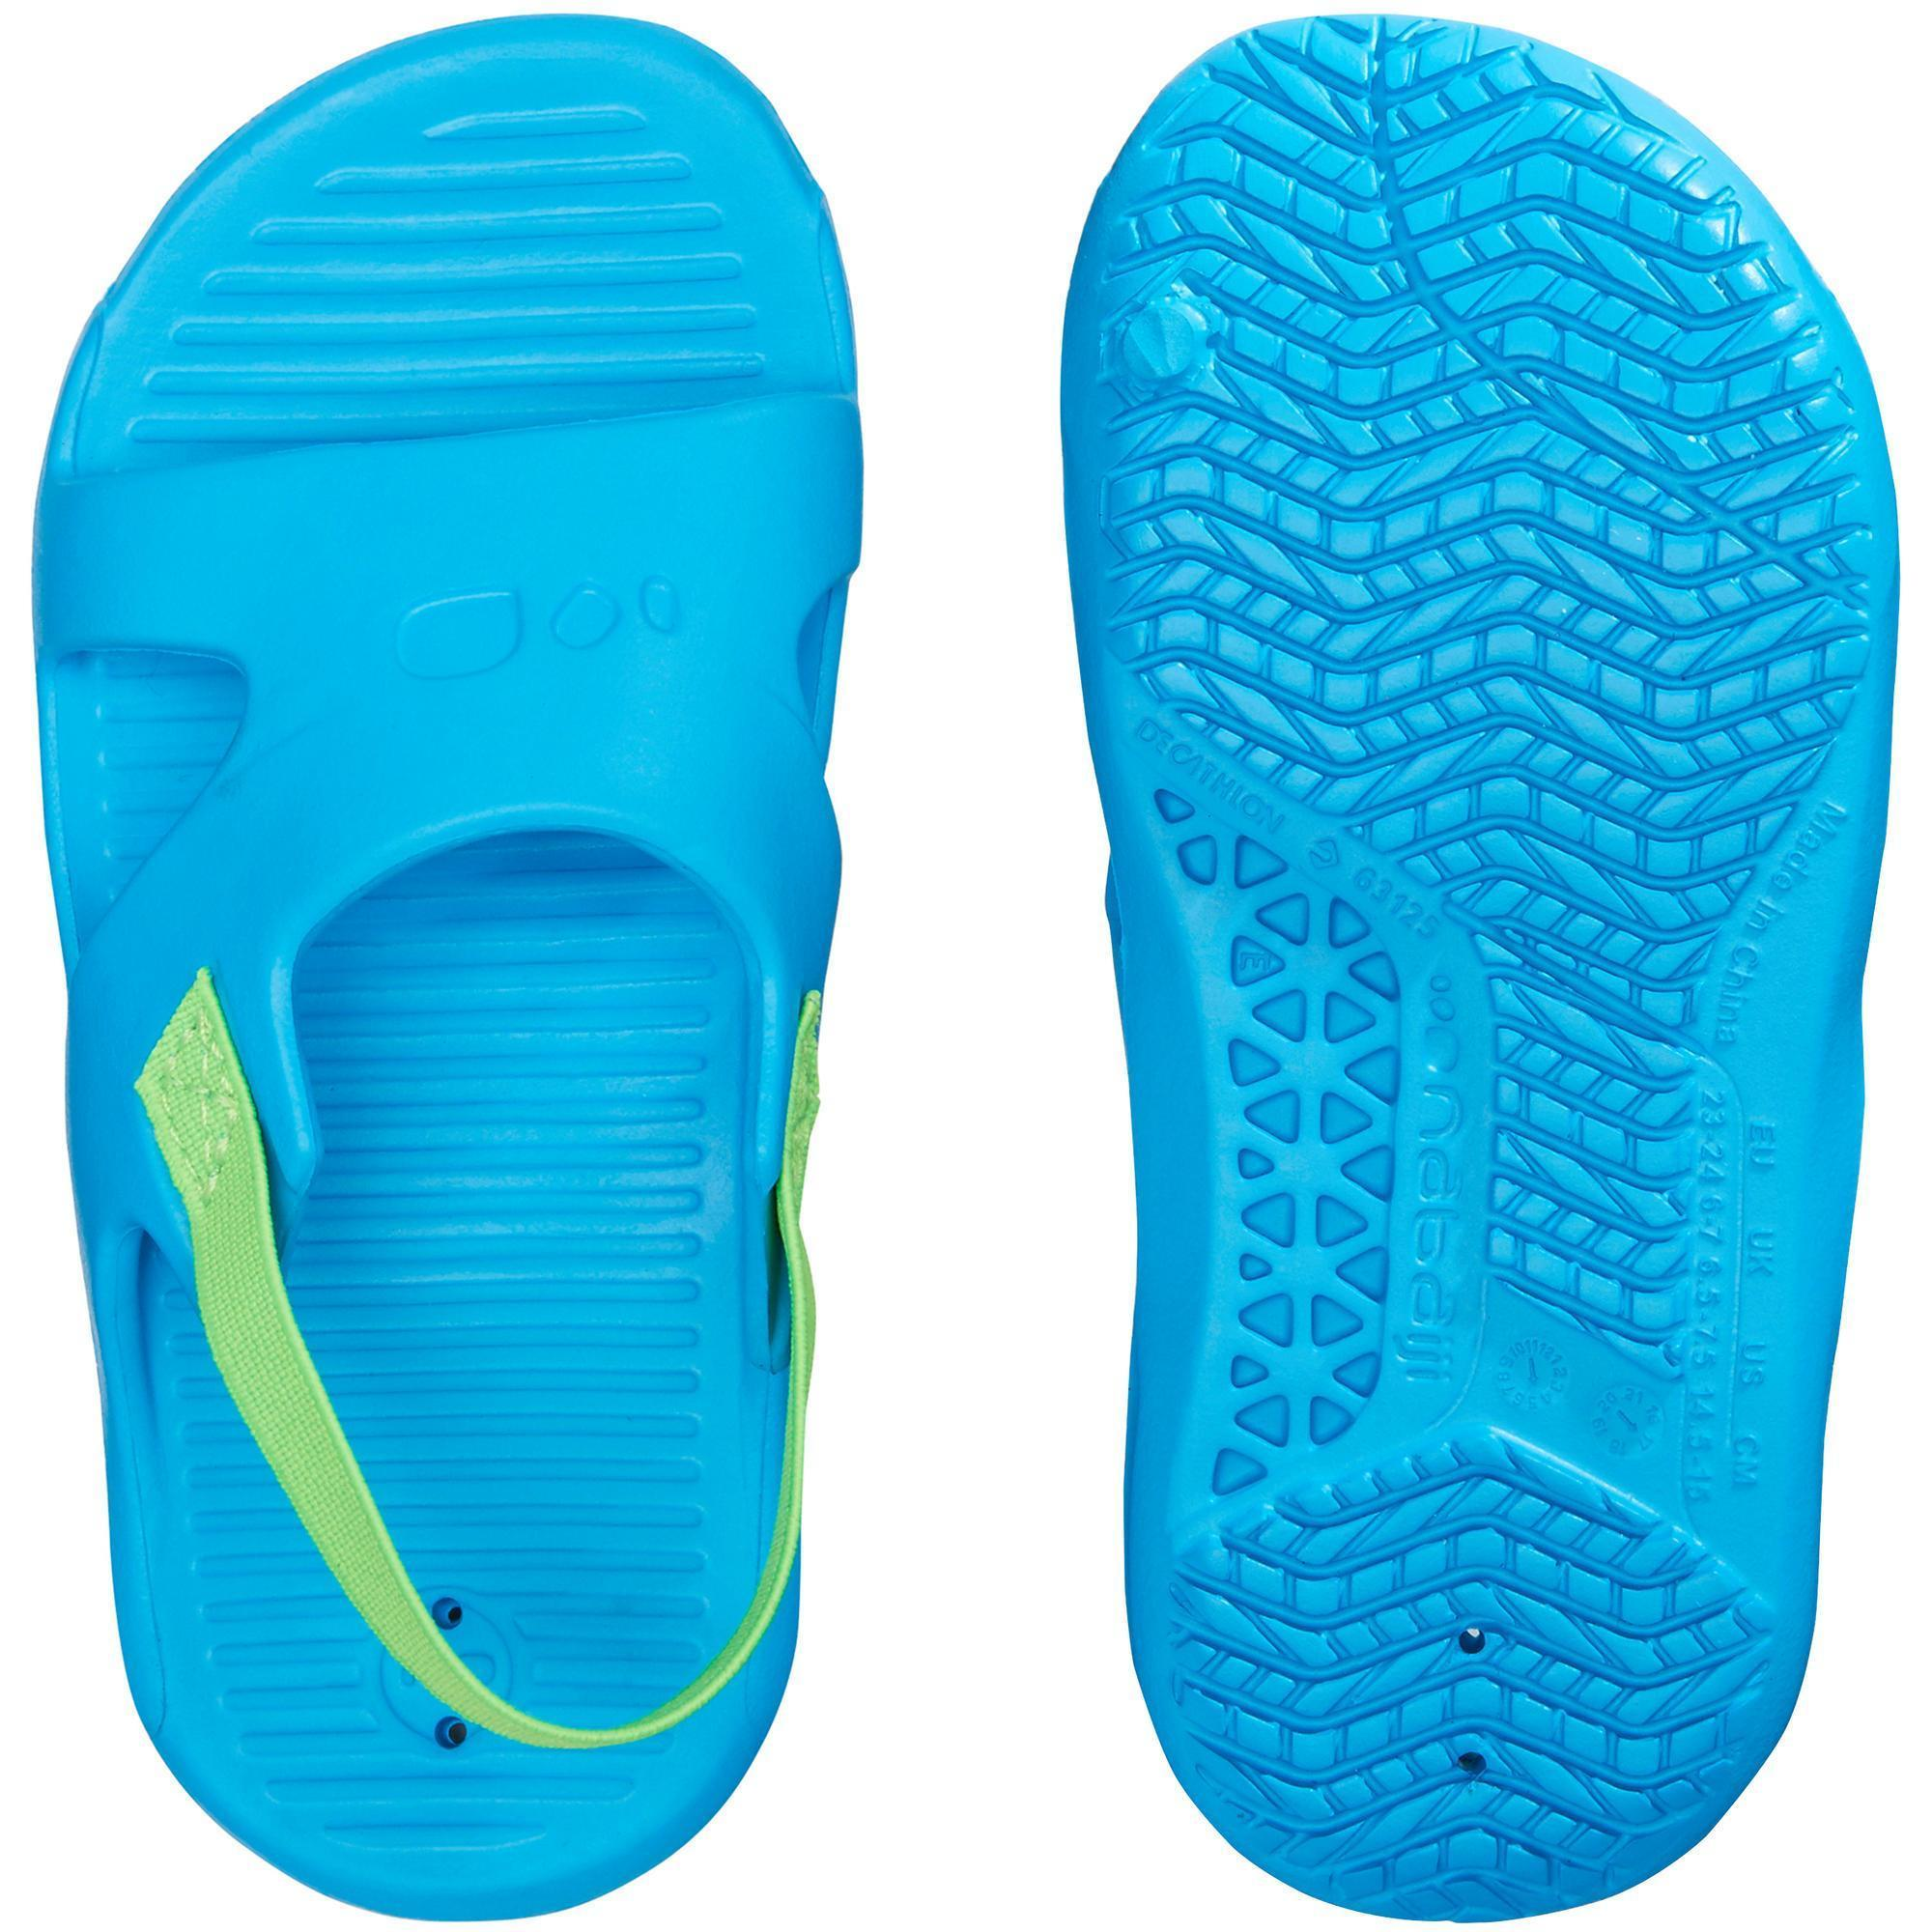 Blue Swimwear Pool Baby Elastic Baby's Green Sandals With USMGqVpz